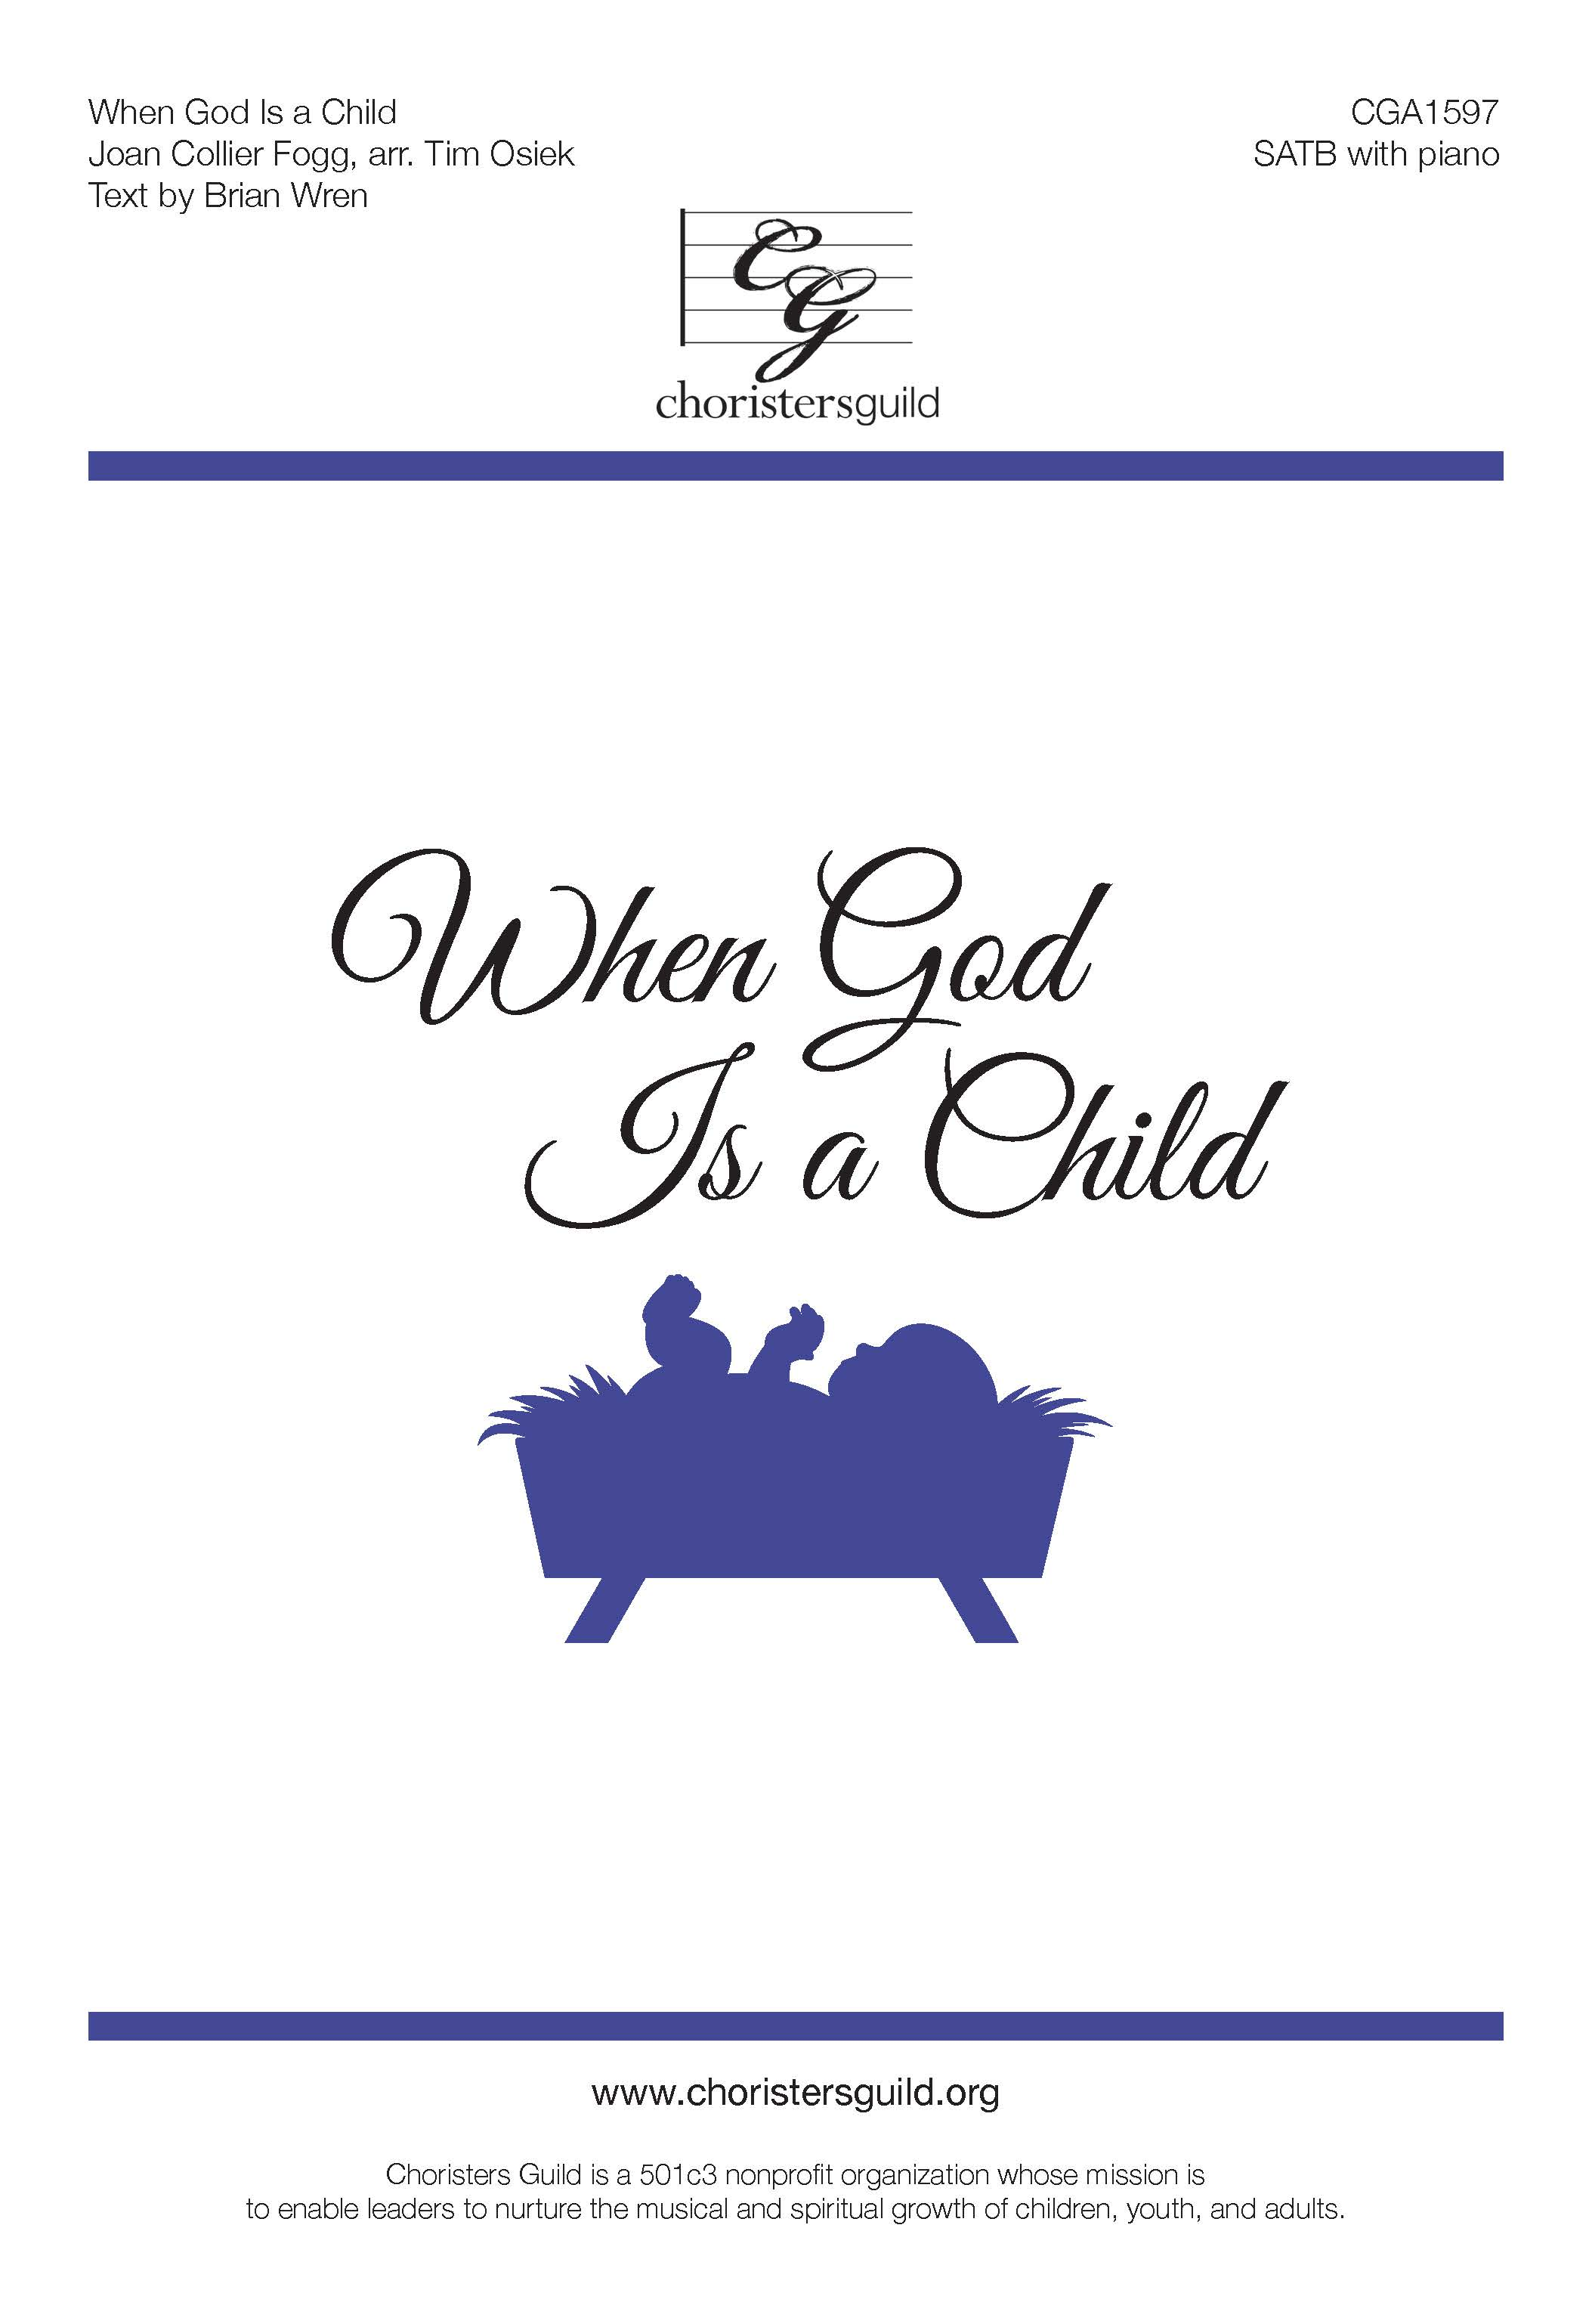 When God is a Child - SATB